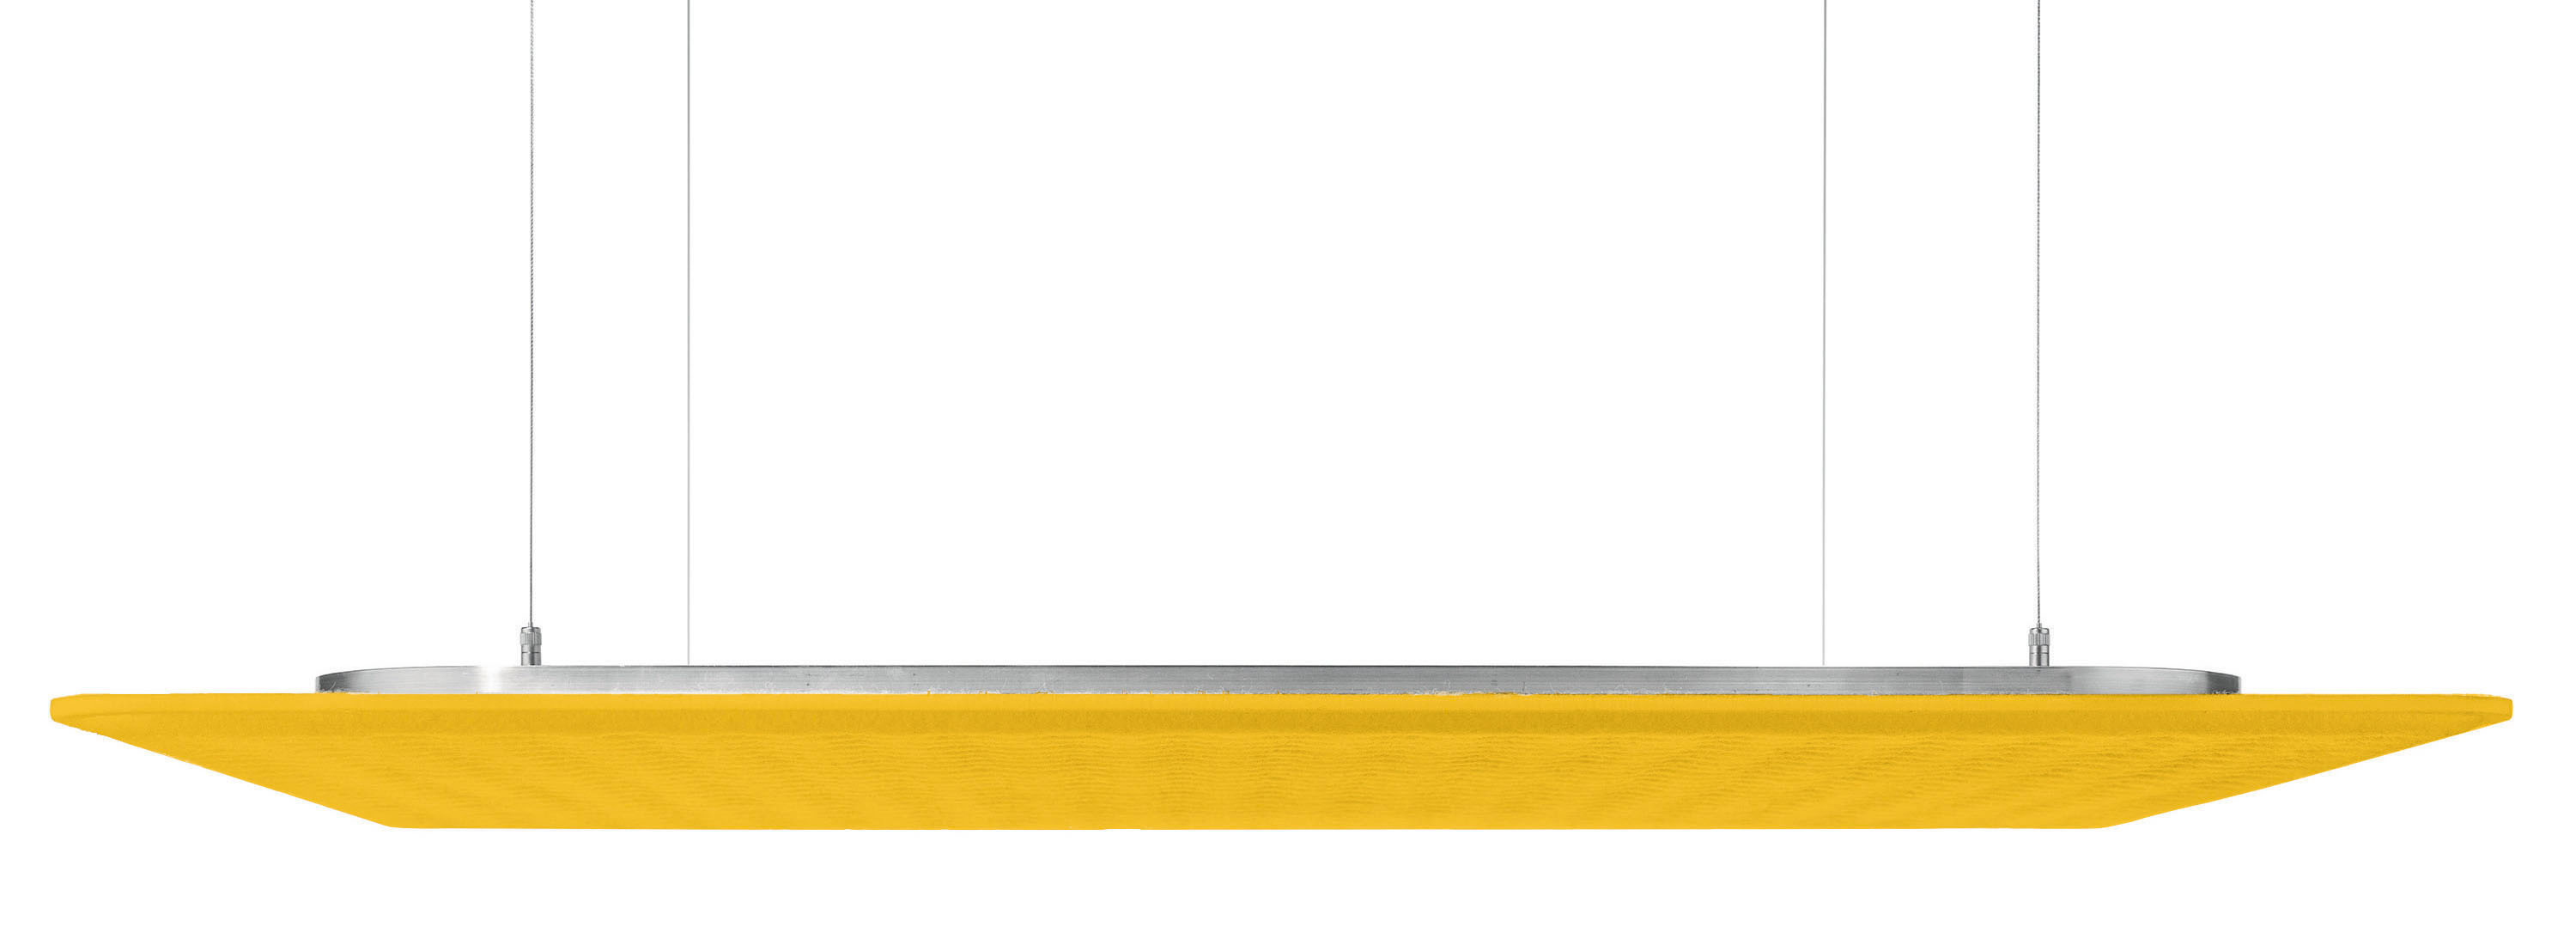 Rossoacoustic PAD Q 600 Basic, 600 x 600 x 25 mm, yellow field